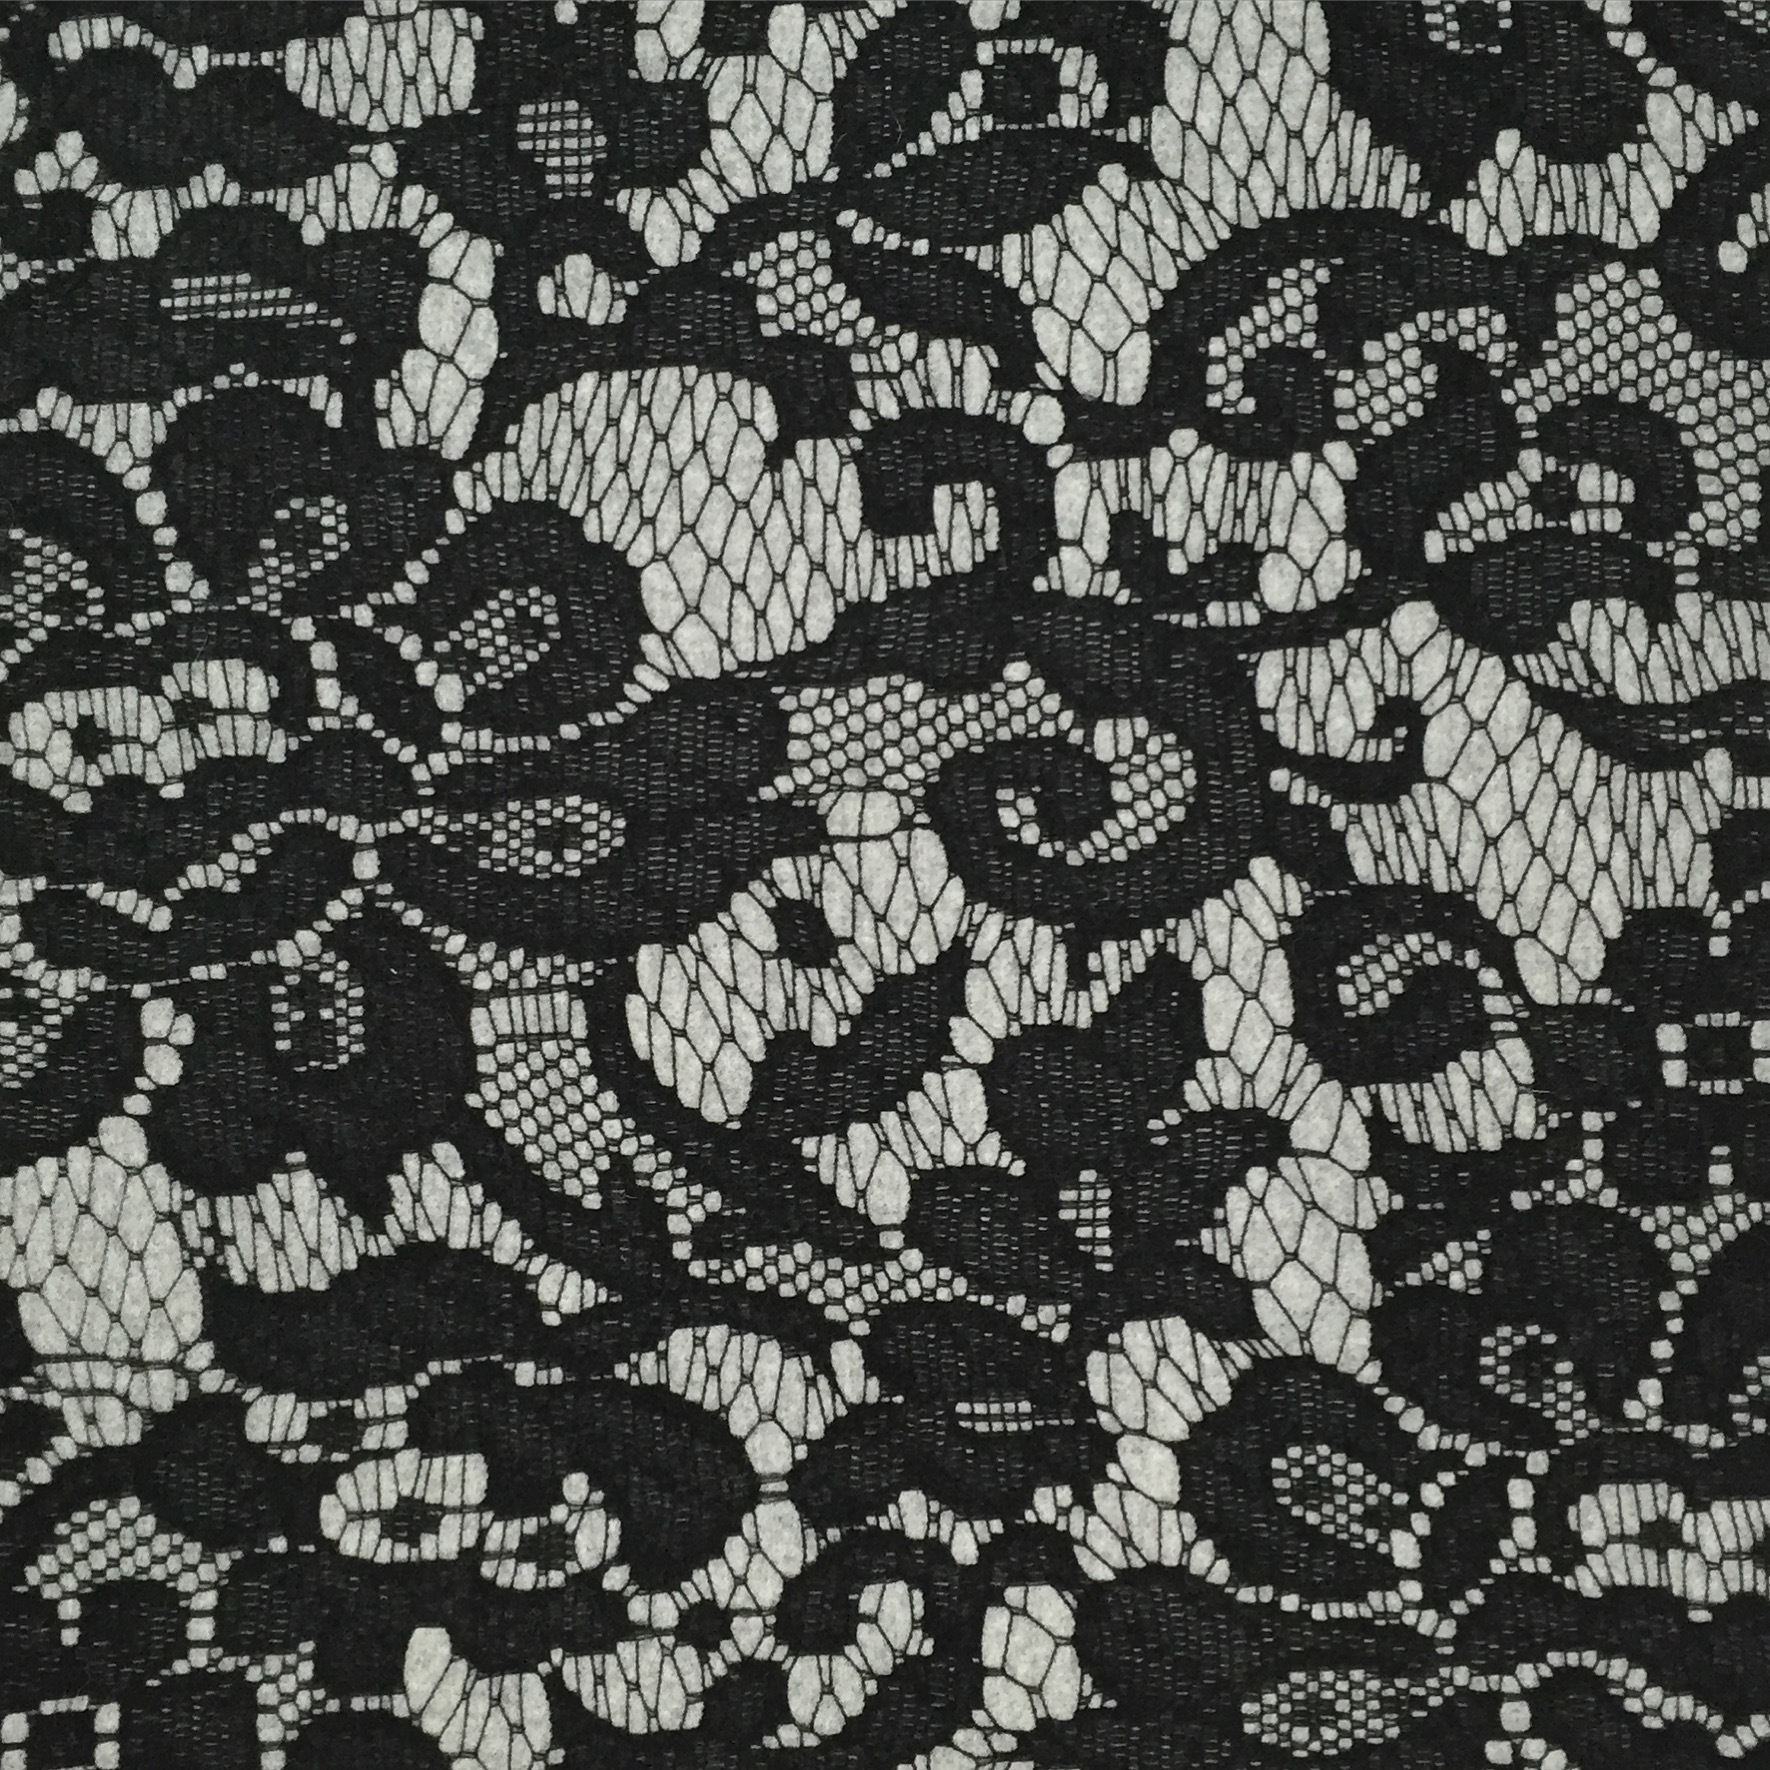 faering ltd digital print melton wool woven lace design